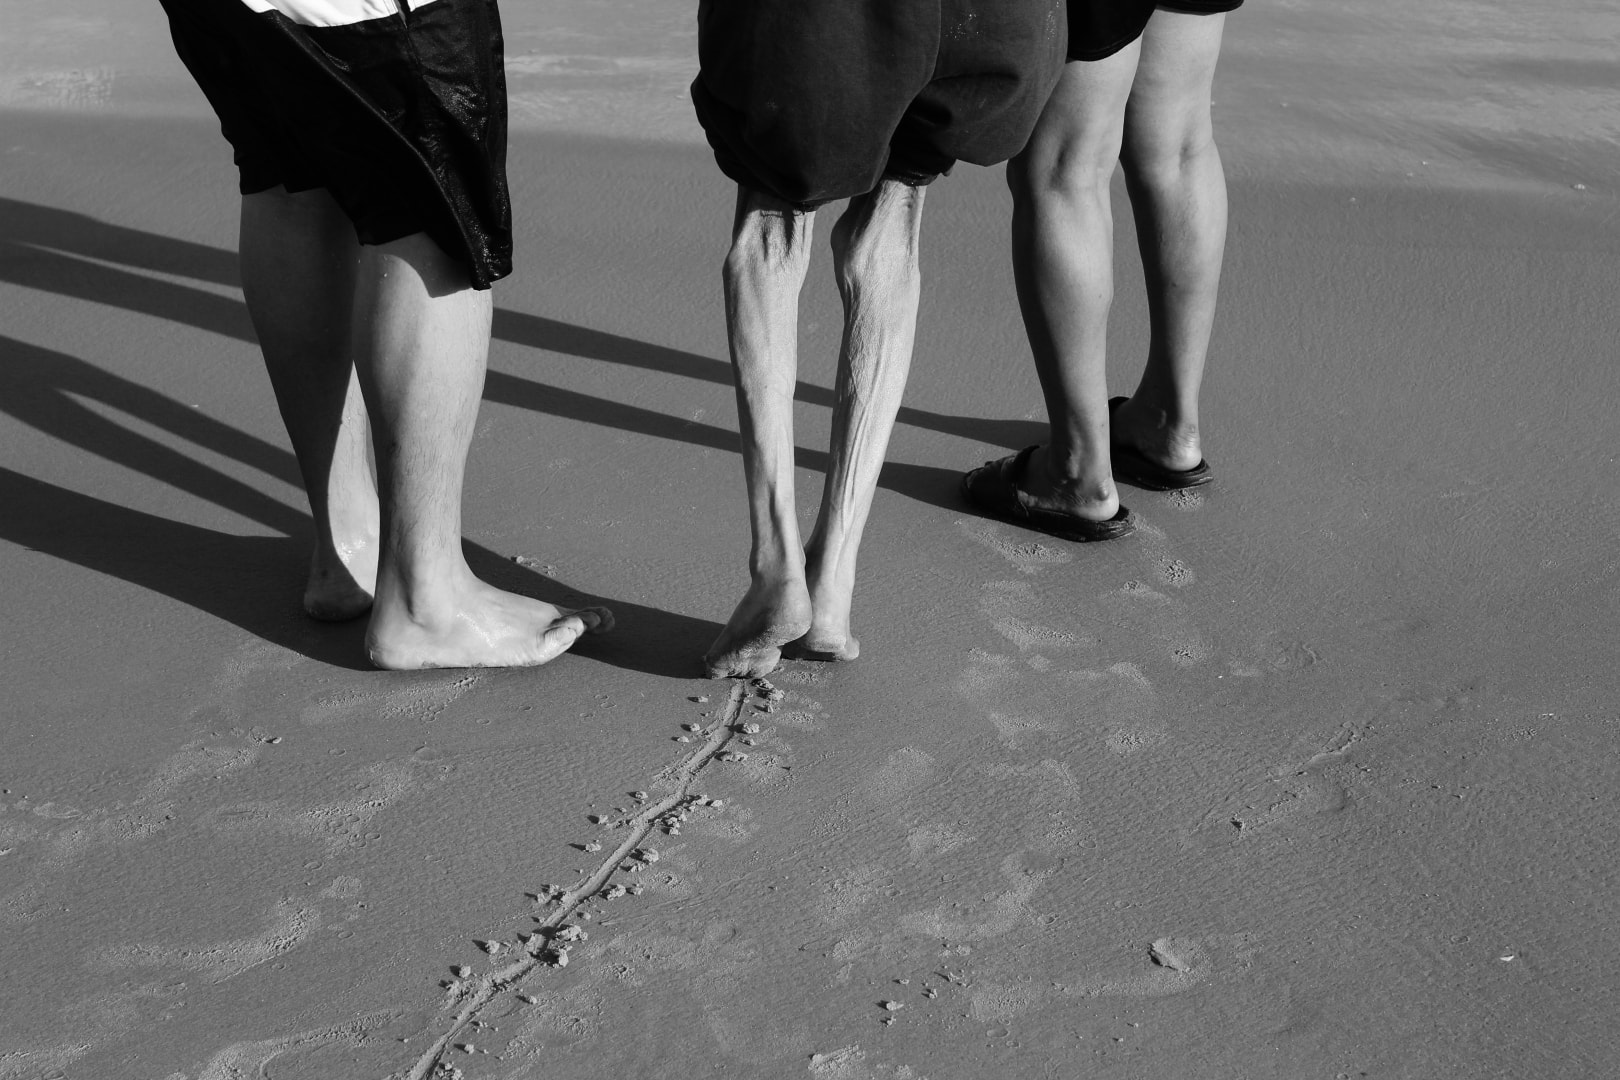 legs trail sand monochrome help shadow